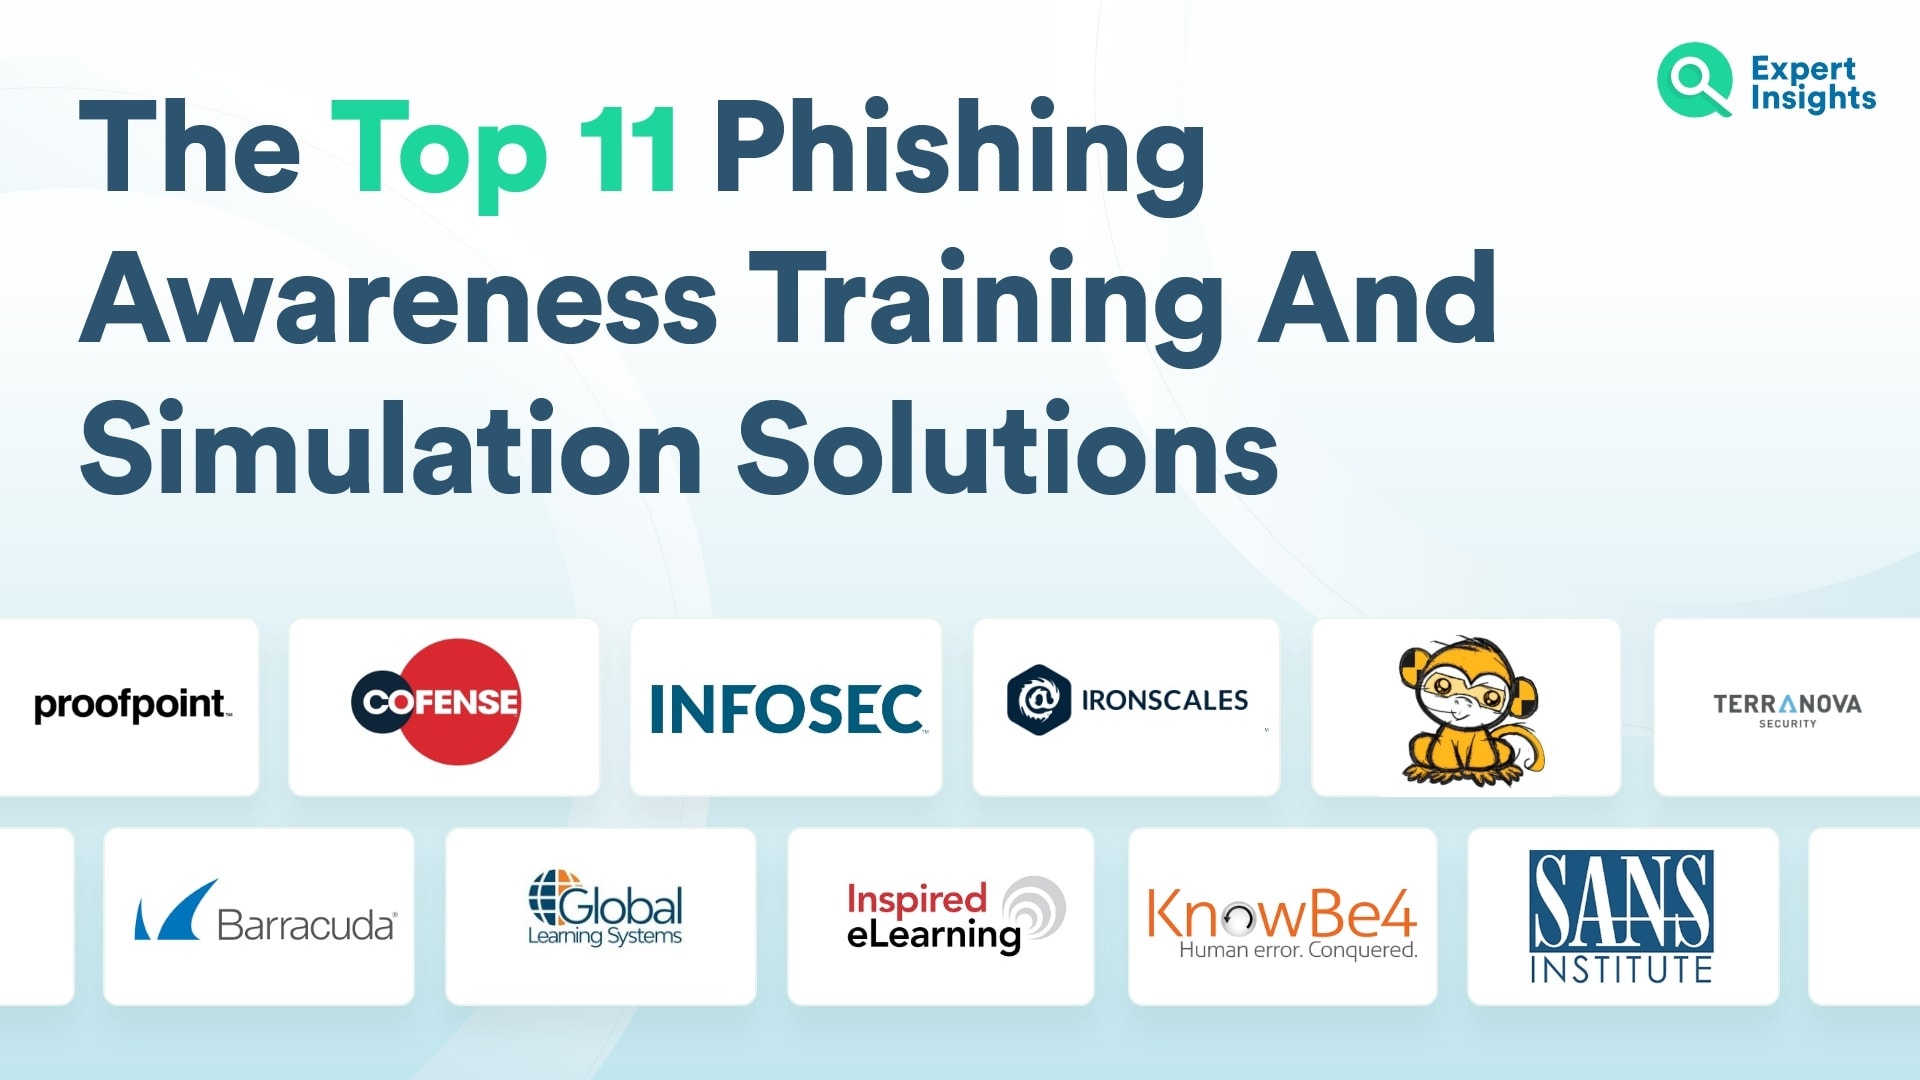 Top-11-Phishing-Awareness-Training-And-Simulation-Solutions-Expert-Insights